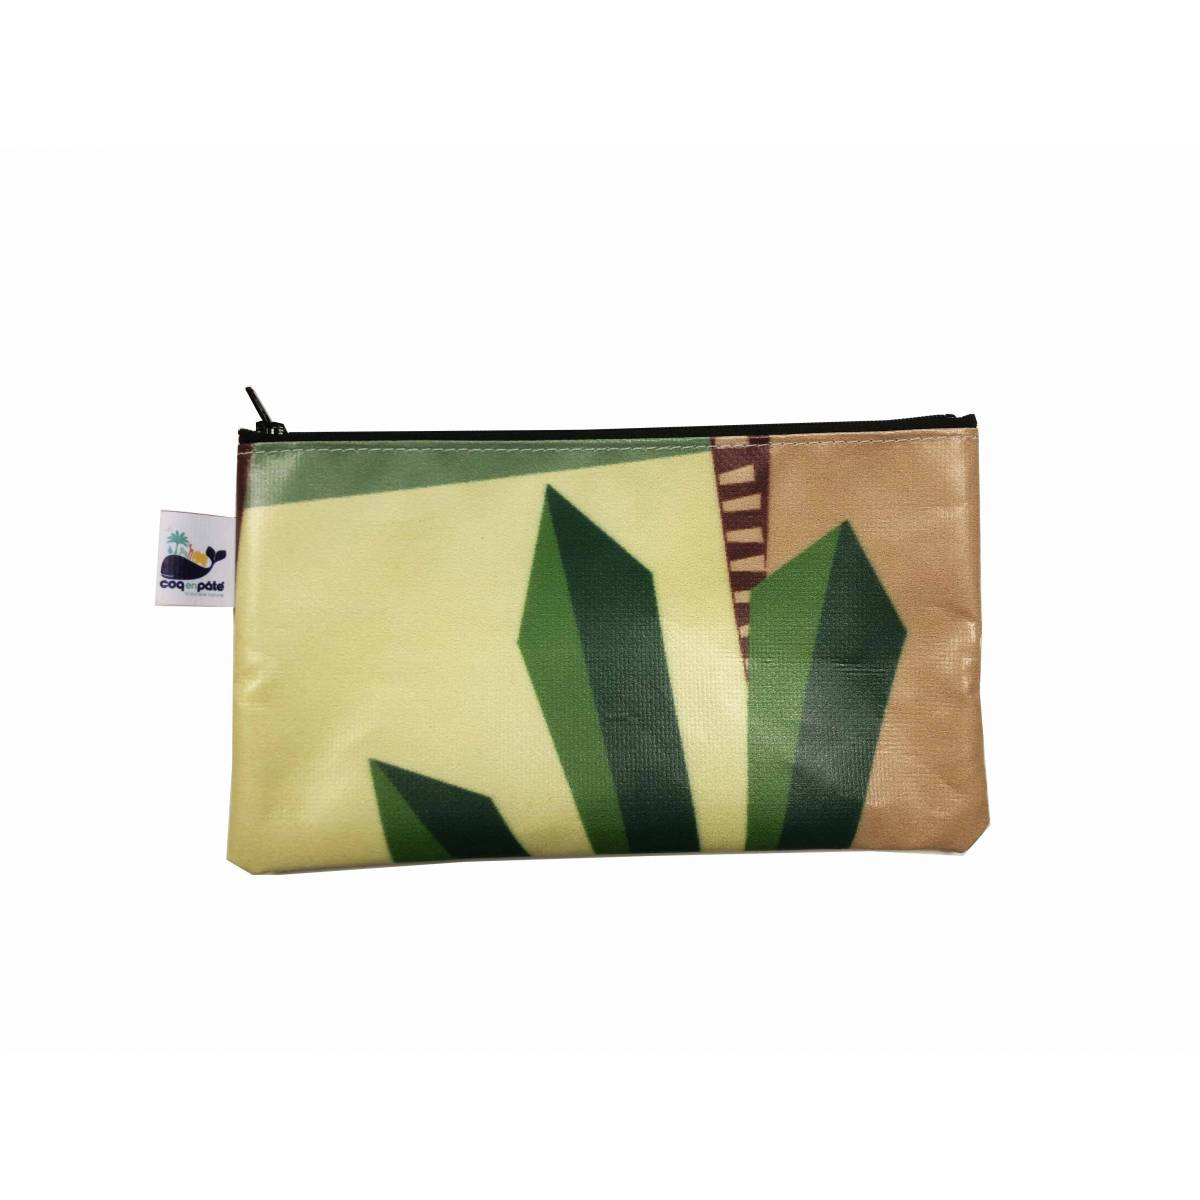 Pencil case - Limited Edition n°40/40